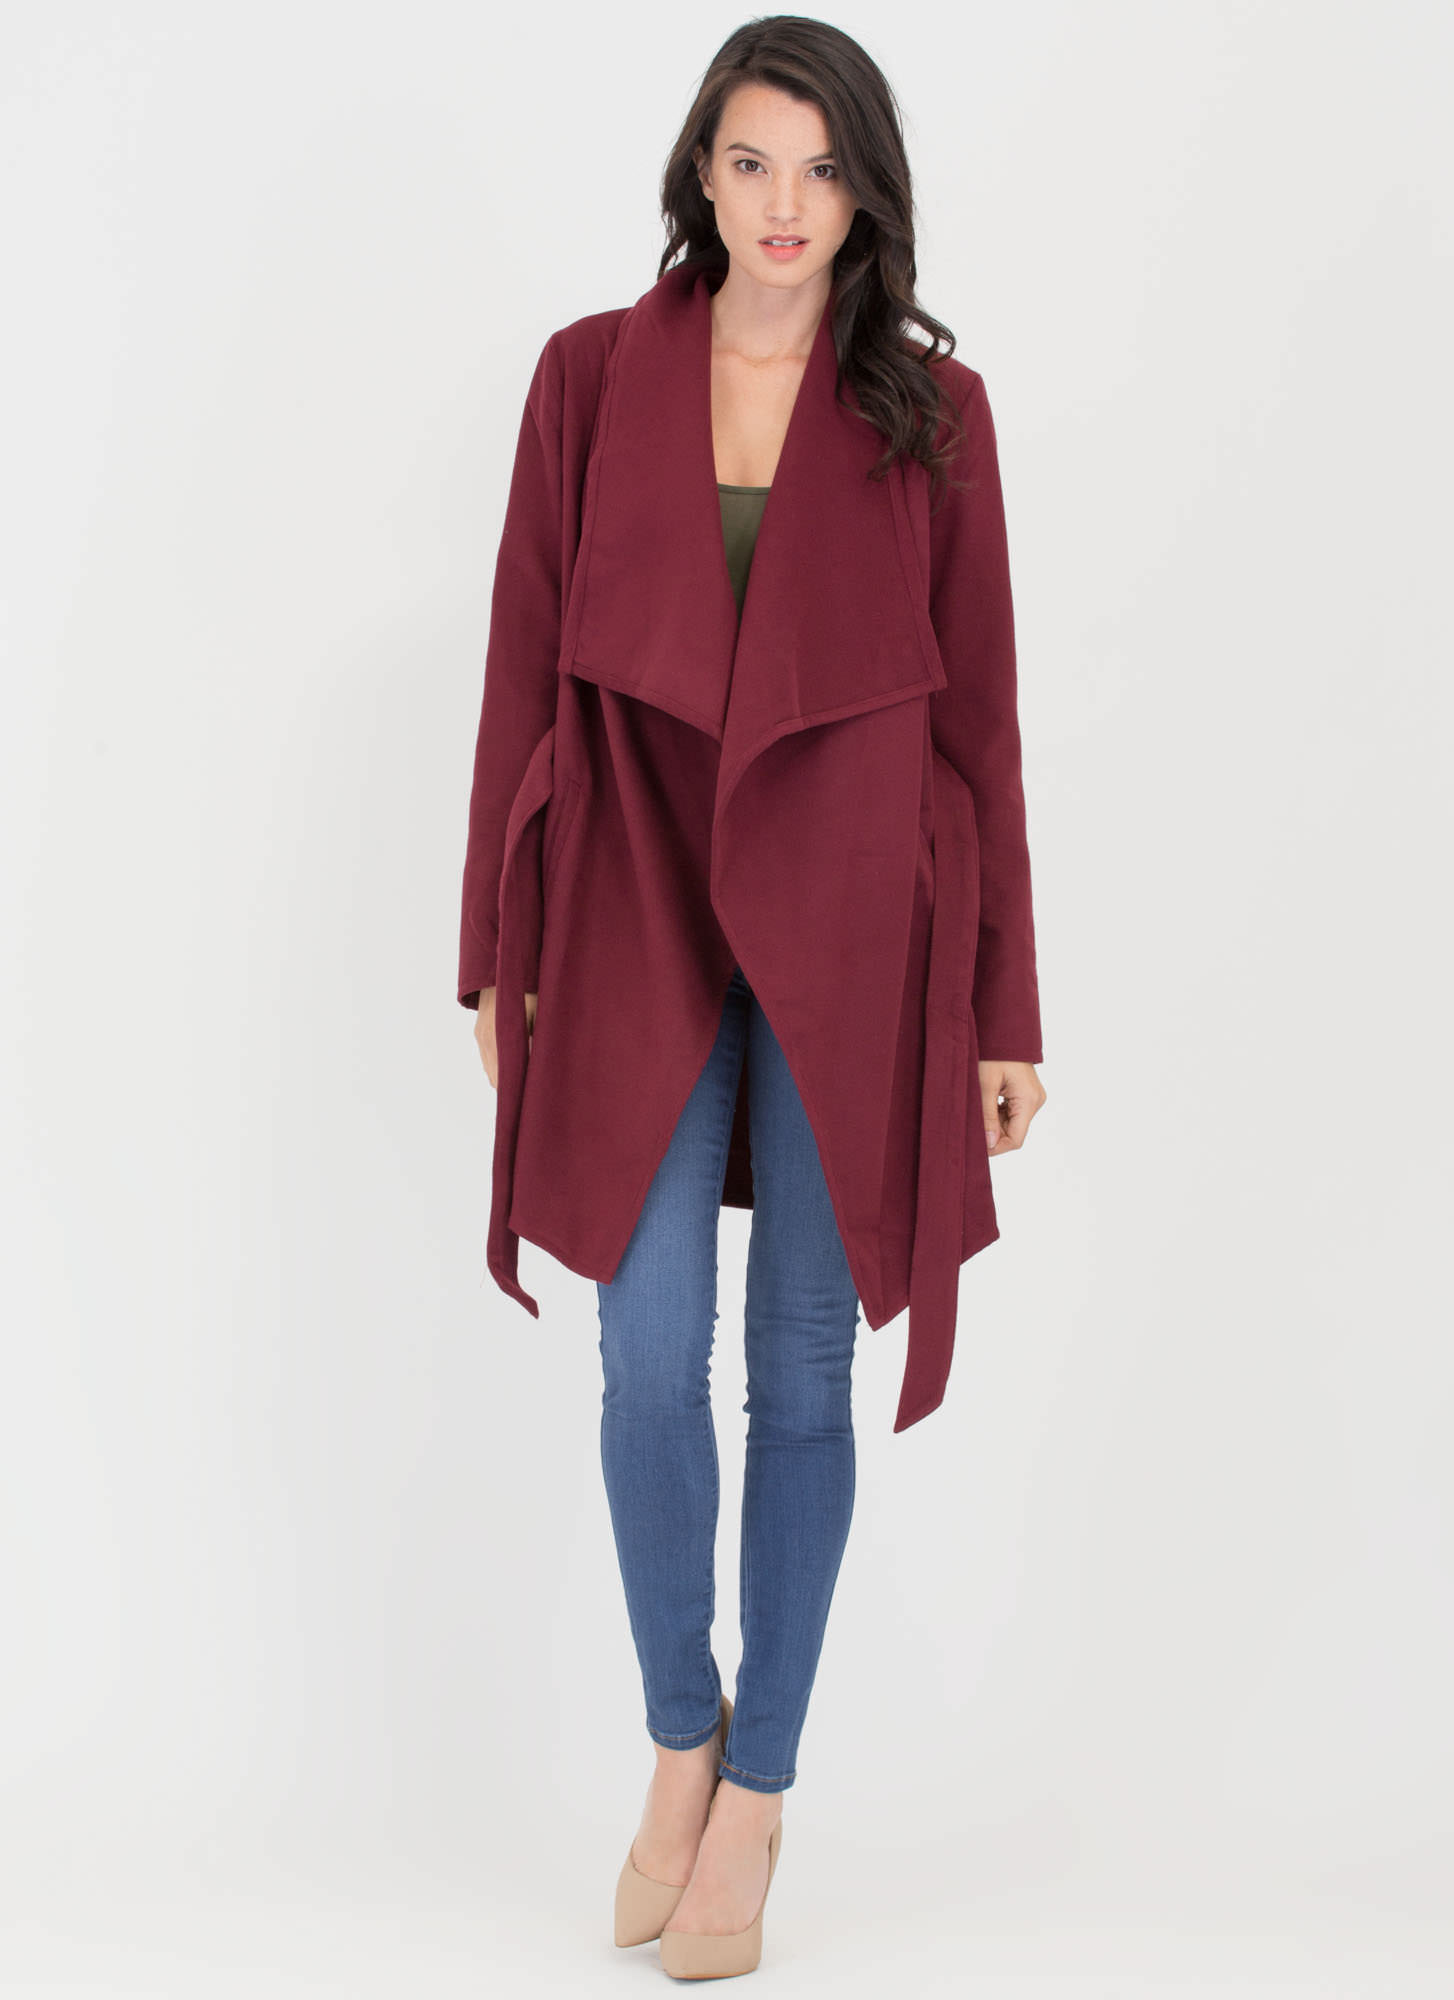 Flasher Forward Trench Coat BURGUNDY